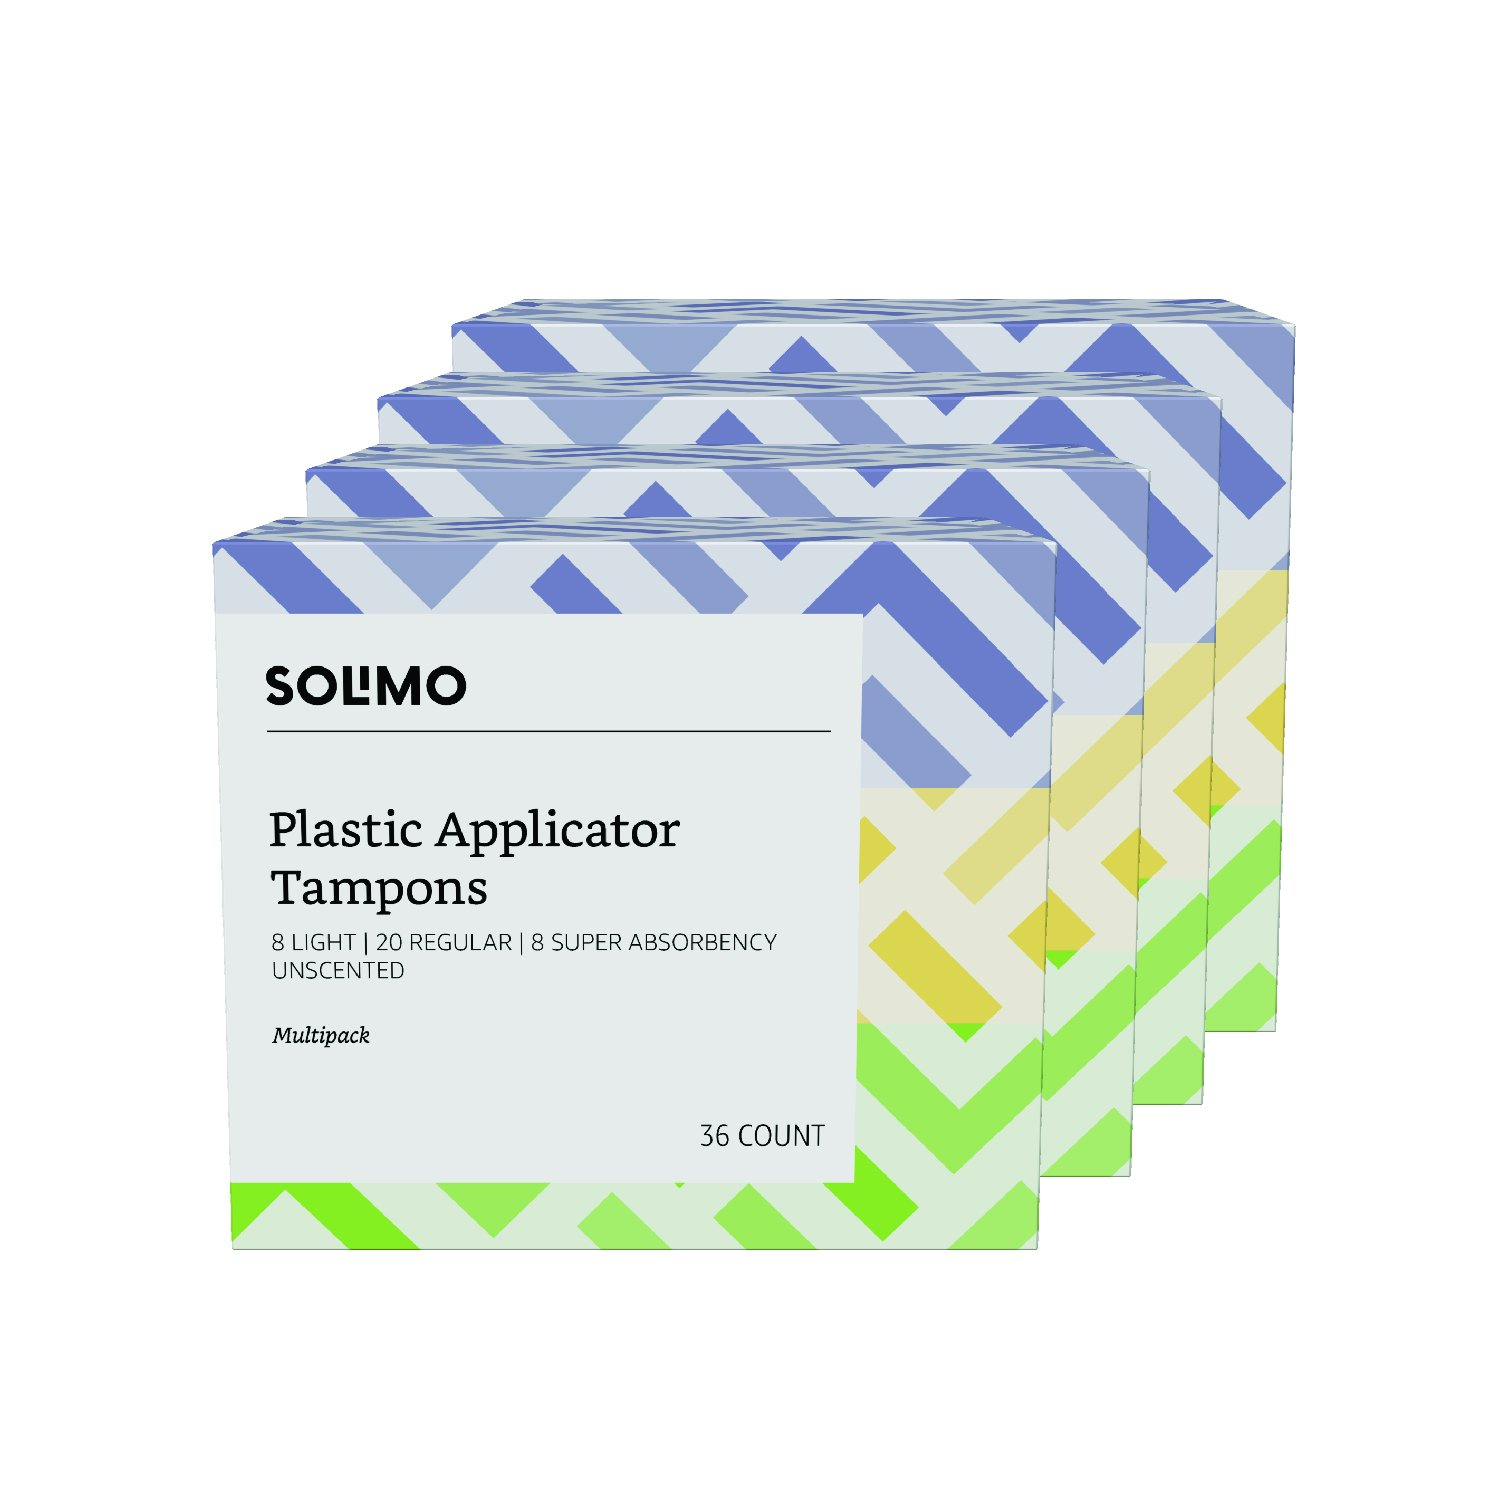 Amazon Brand - Solimo Plastic Applicator Tampons, Multipack, Light/Regular/Super Absorbency, Unscented, 144 Count